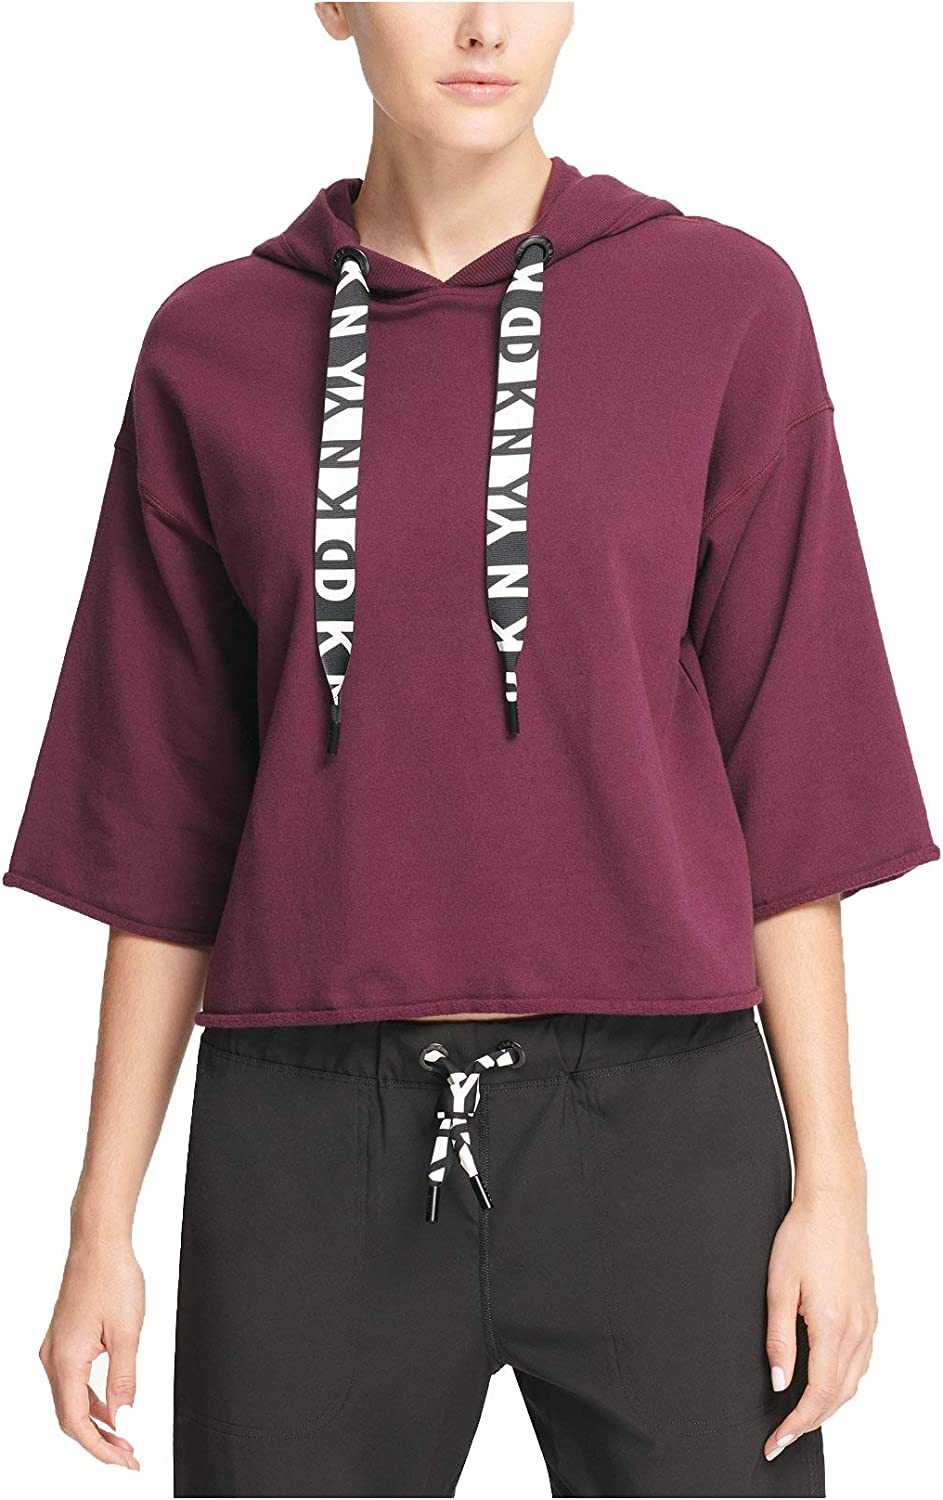 DKNY Women's Challenge the lowest price Sport Hoodie Relaxed Popular product Cropped